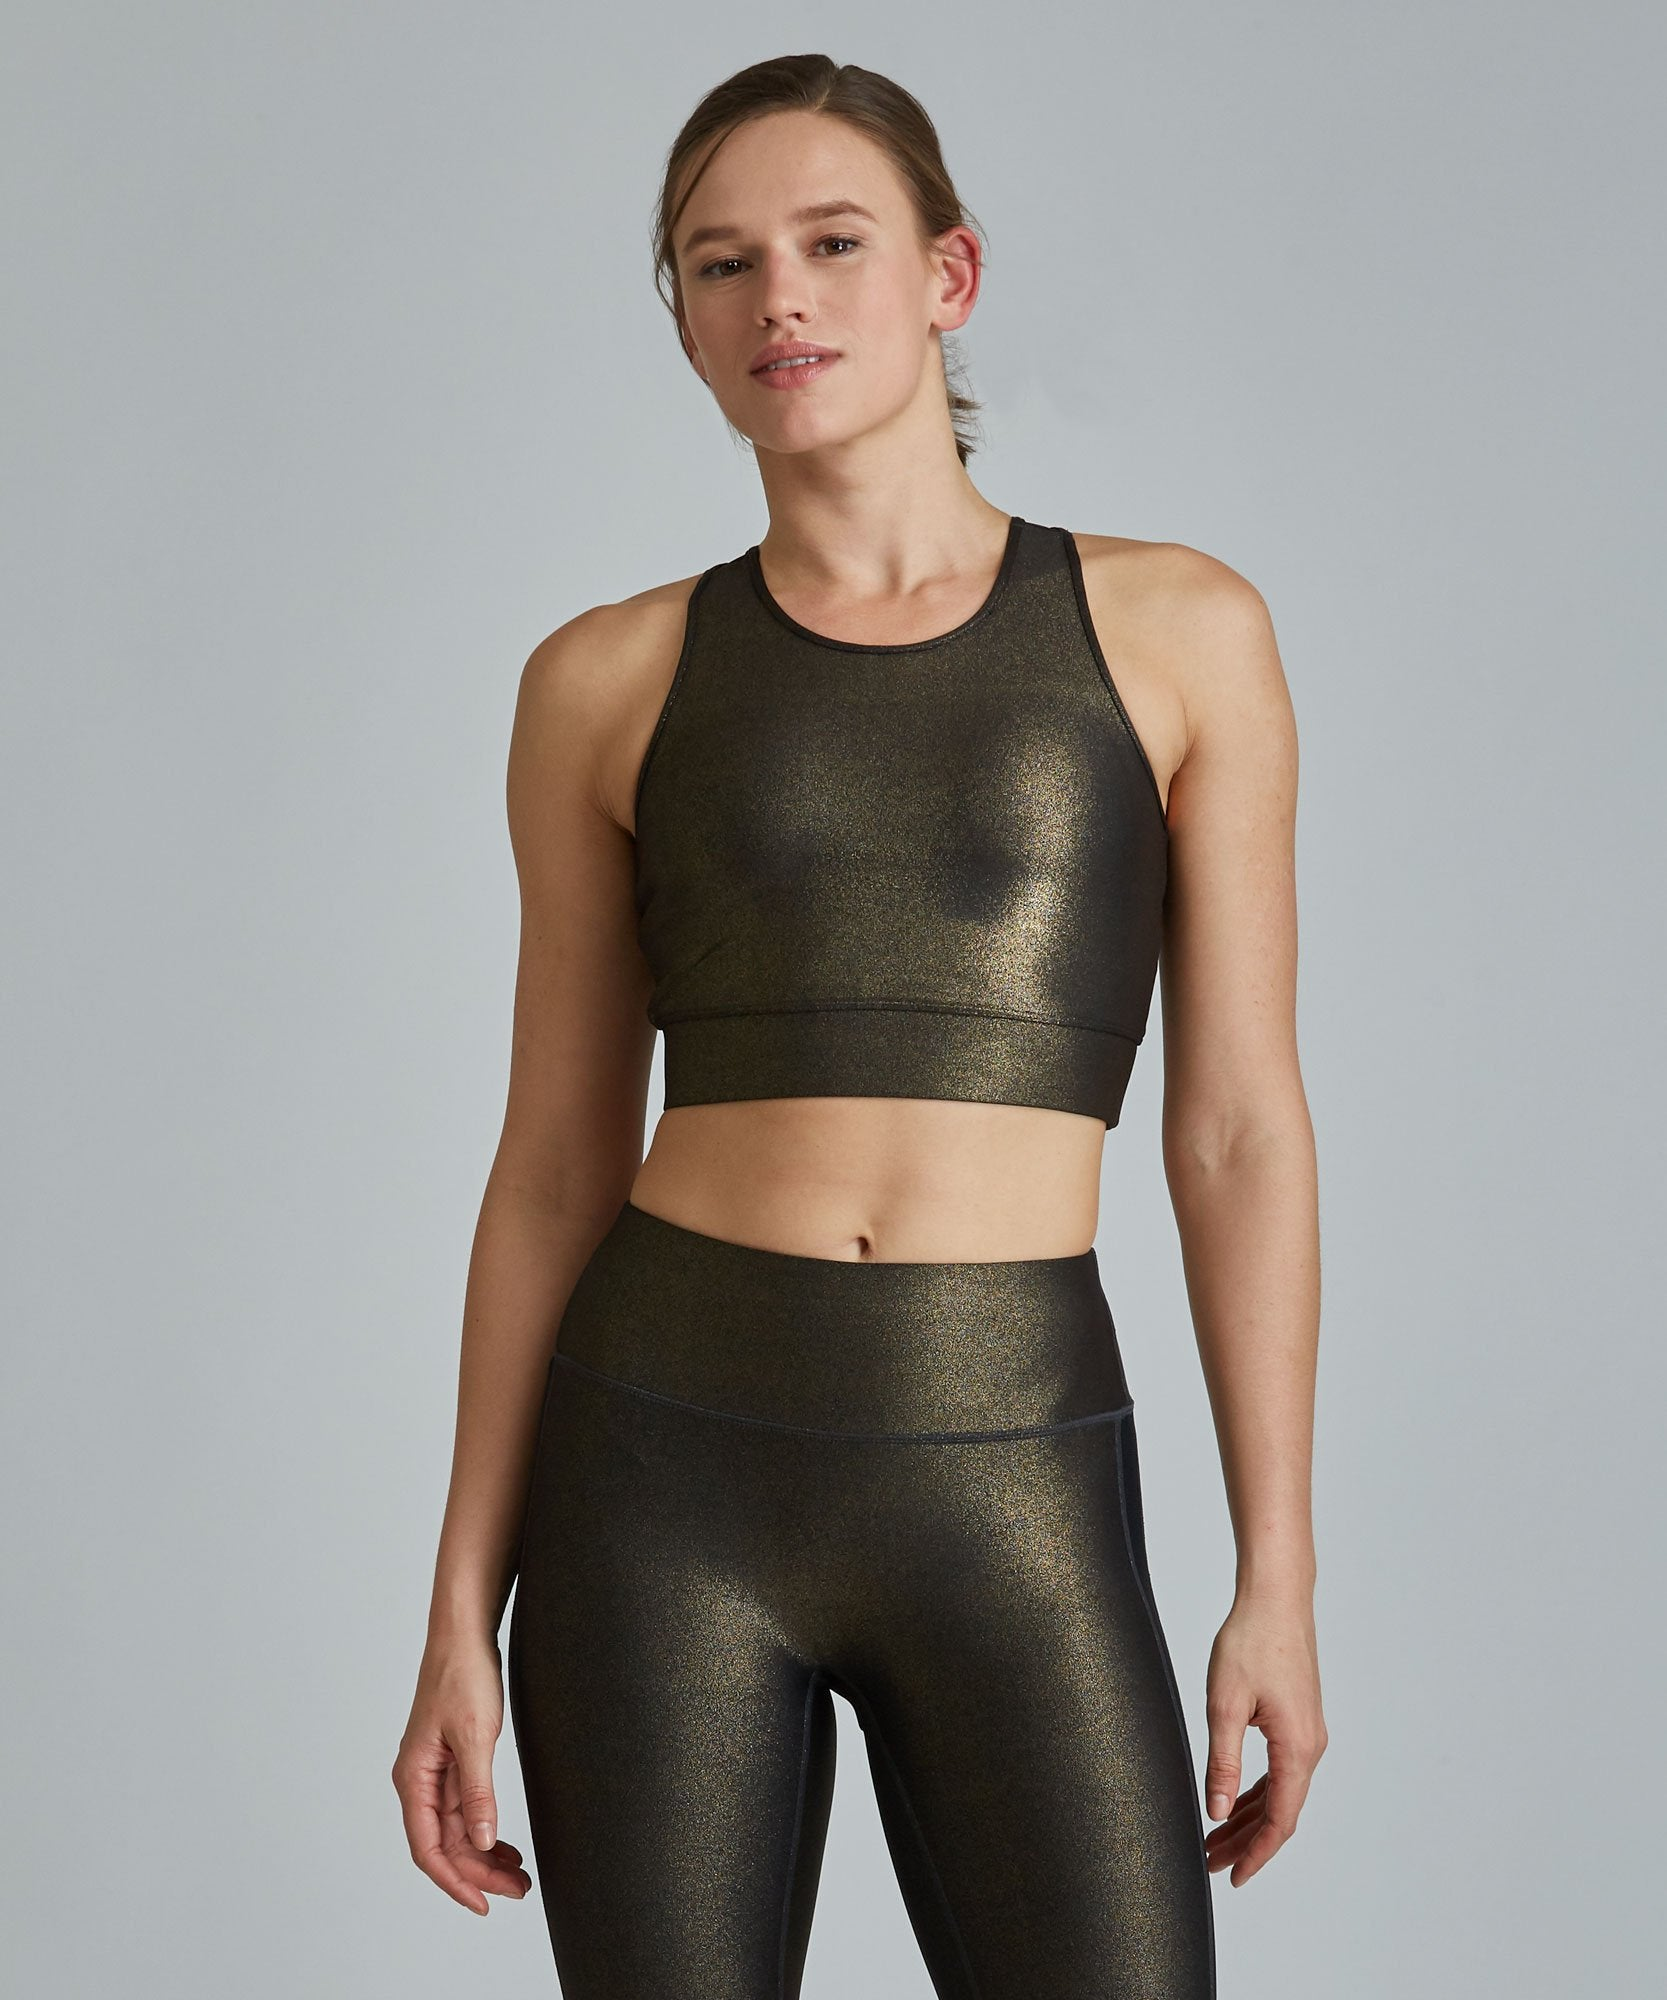 Crop Bra Top - Black/ Gold Shimmer